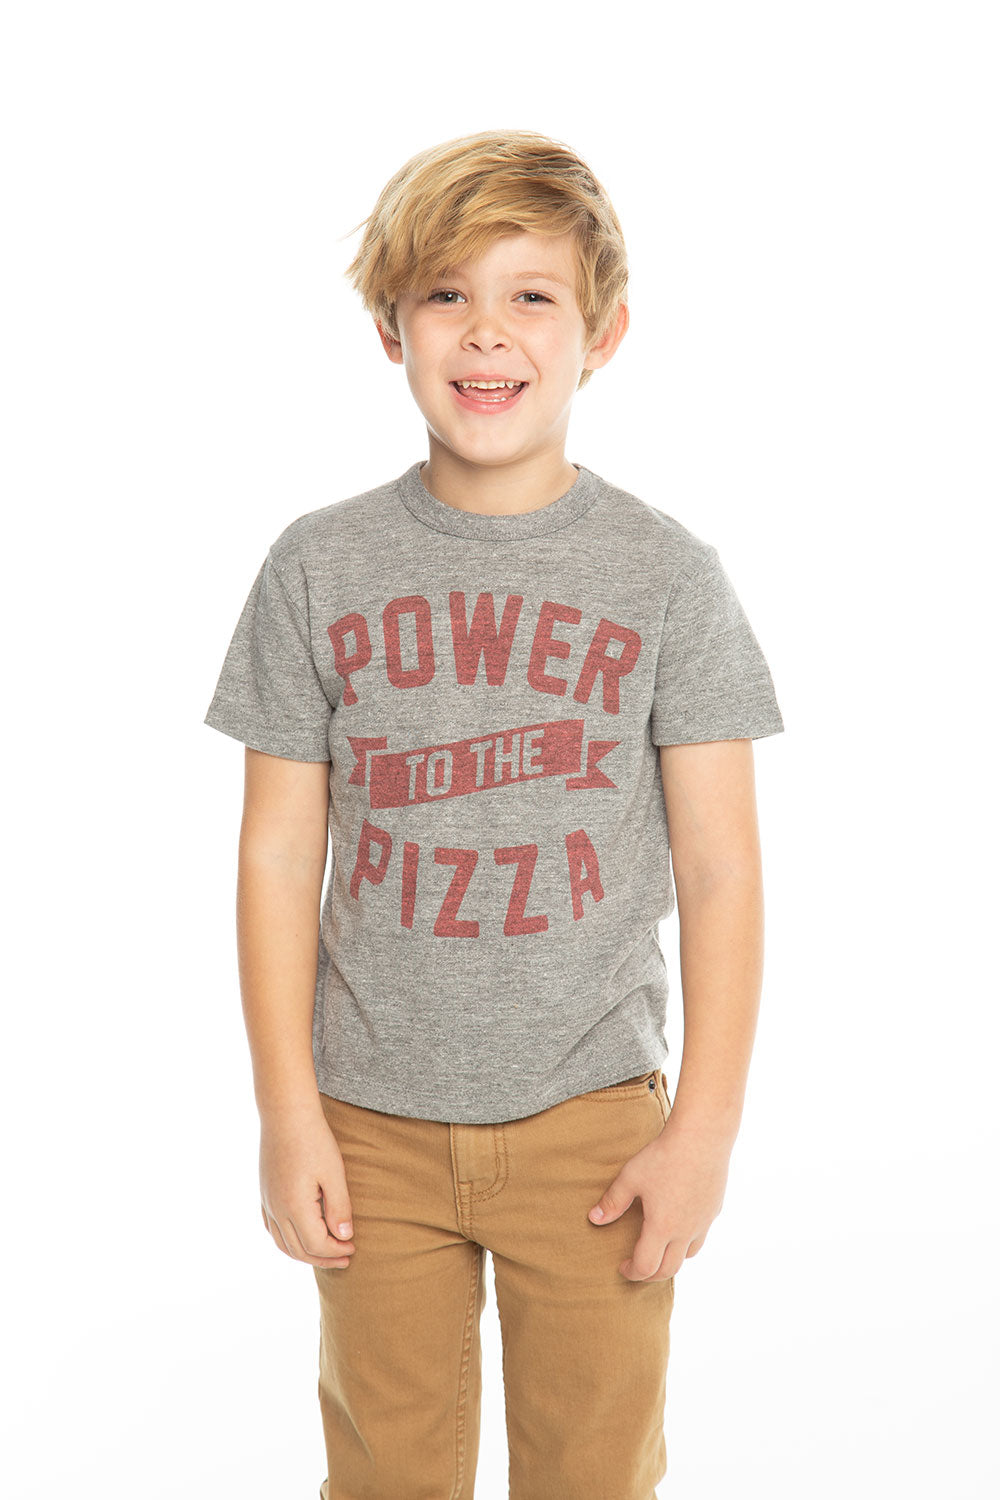 Pizza Power, BOYS, chaserbrand.com,chaser clothing,chaser apparel,chaser los angeles